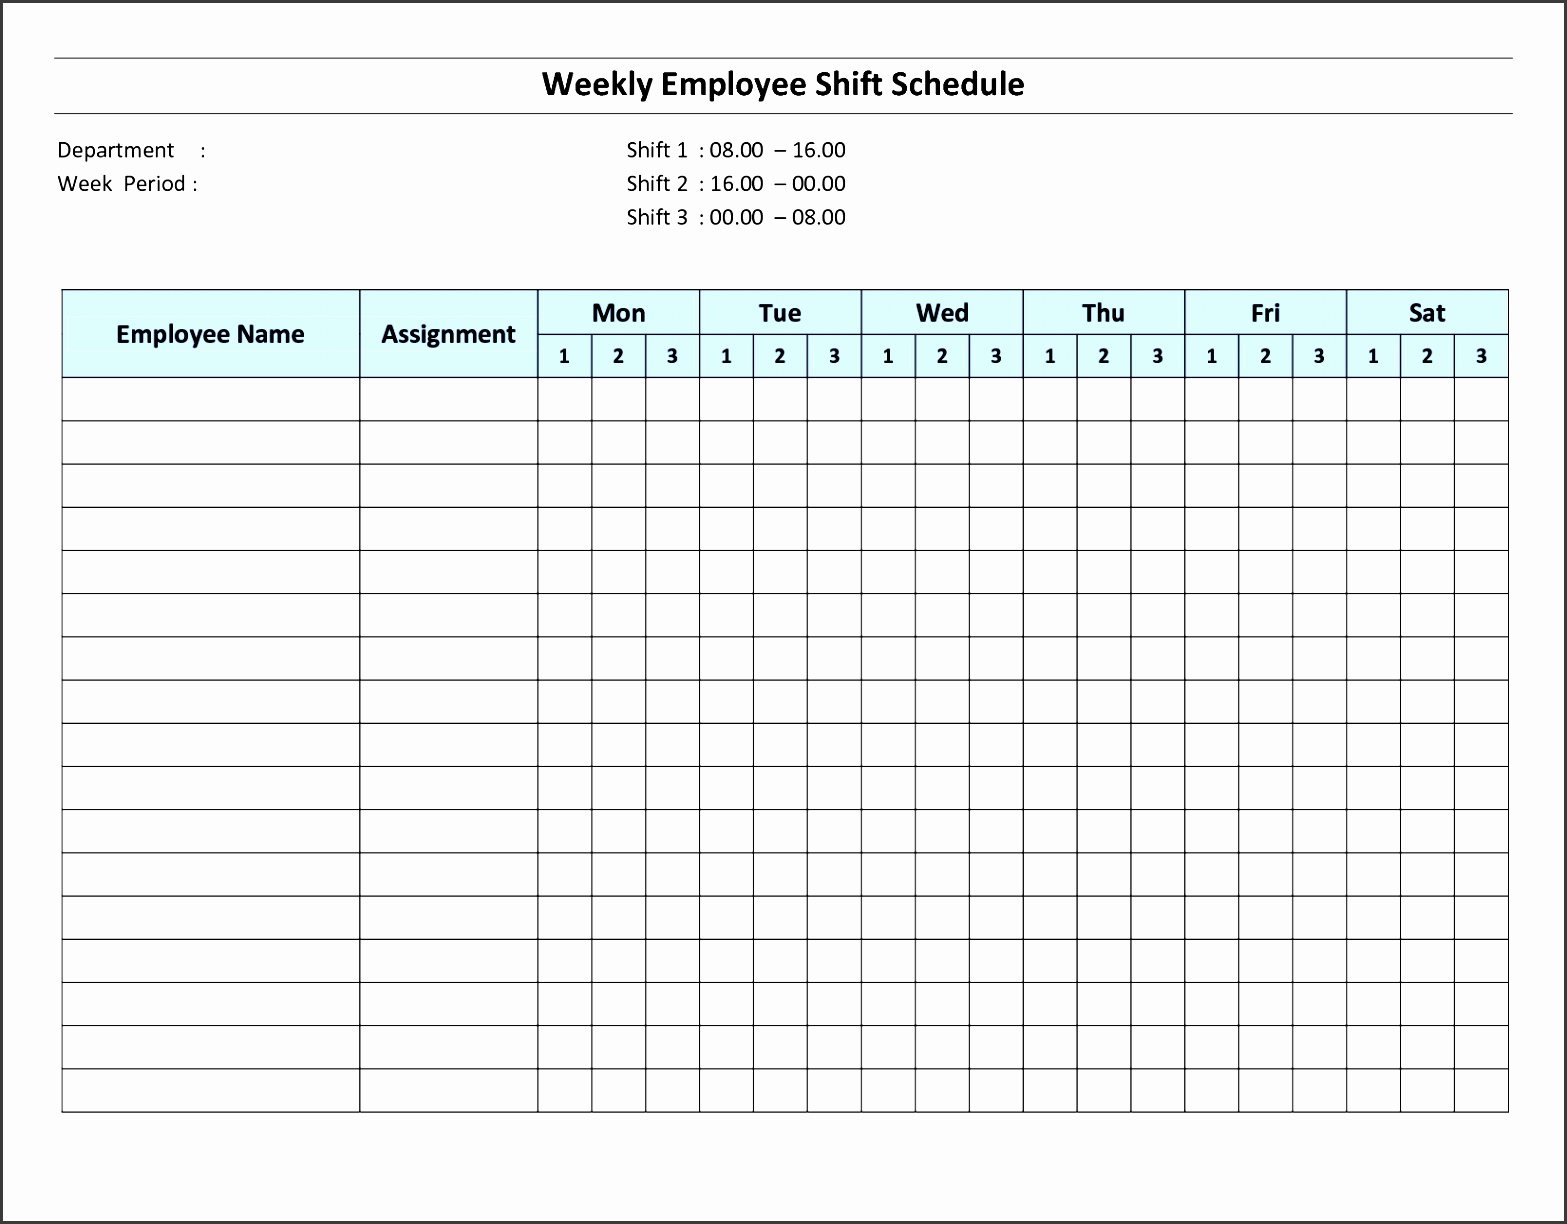 Employee Daily Work Schedule Template Luxury 8 Daily Schedule Template for Employees Sampletemplatess